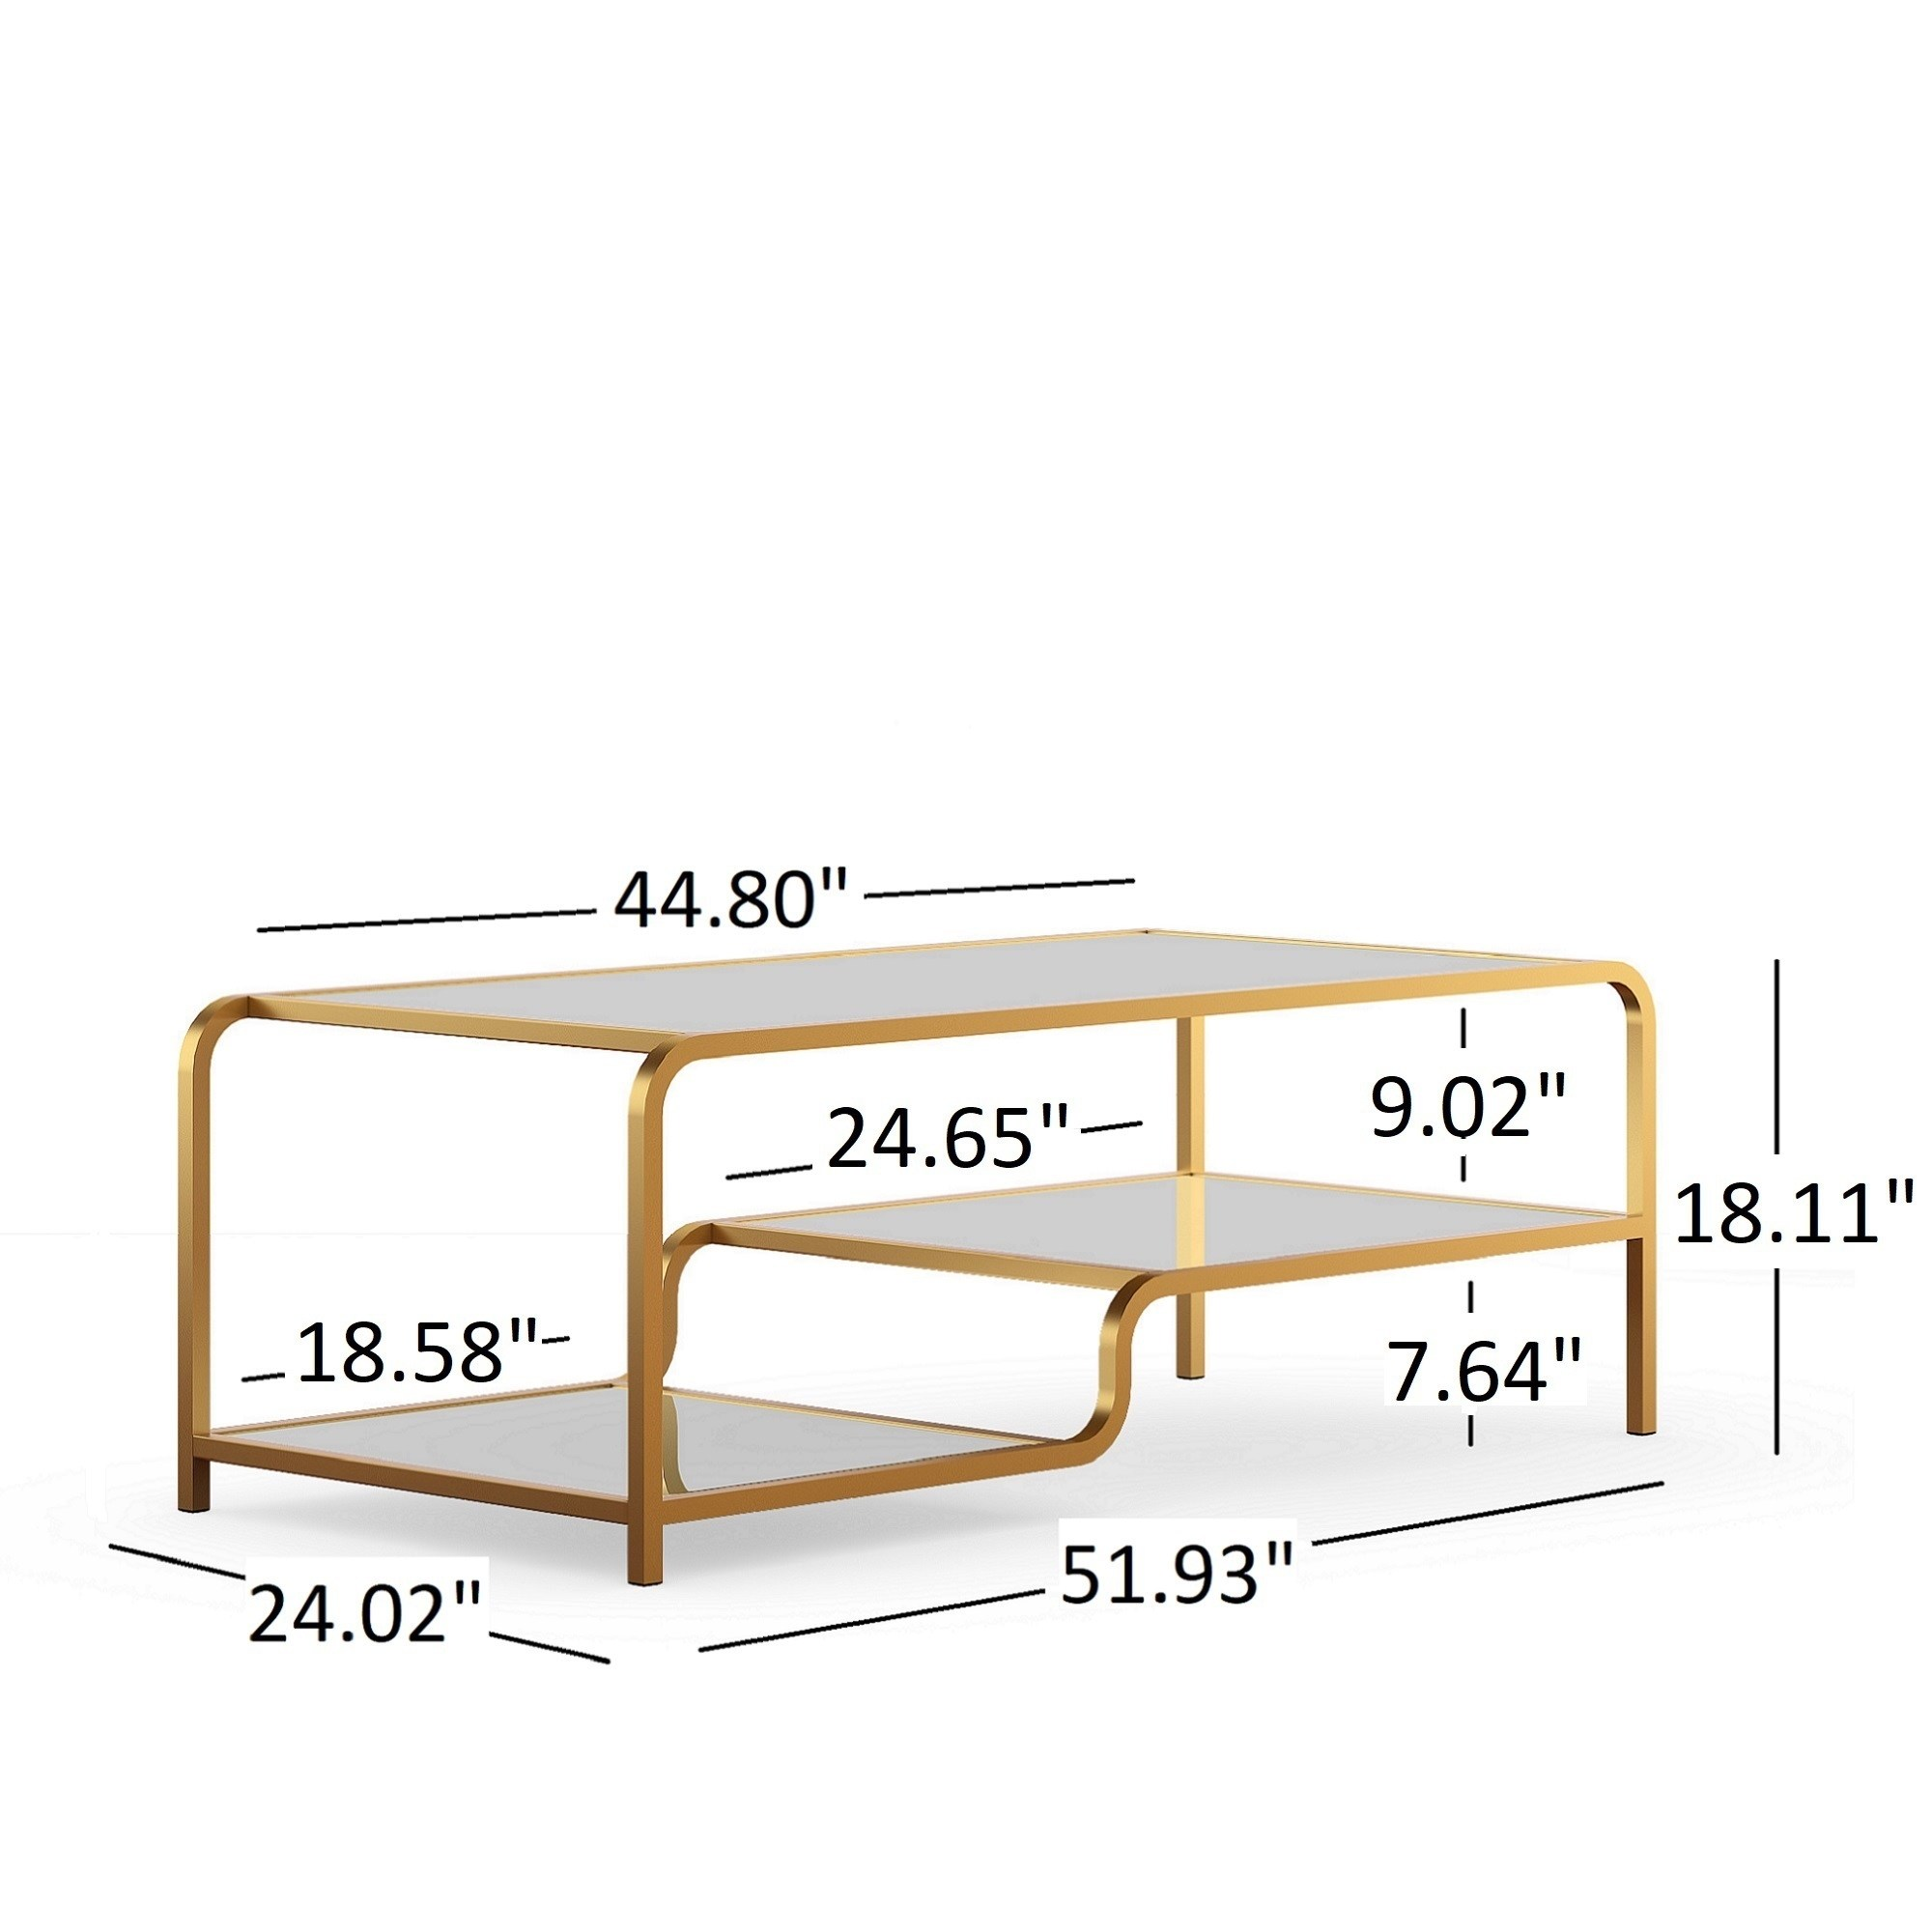 giana champagne gold mirrored shelves accent tables inspire table verizon tablet metal coffee legs wine rack small outdoor bench patio swing french beds tall lamps for bedroom